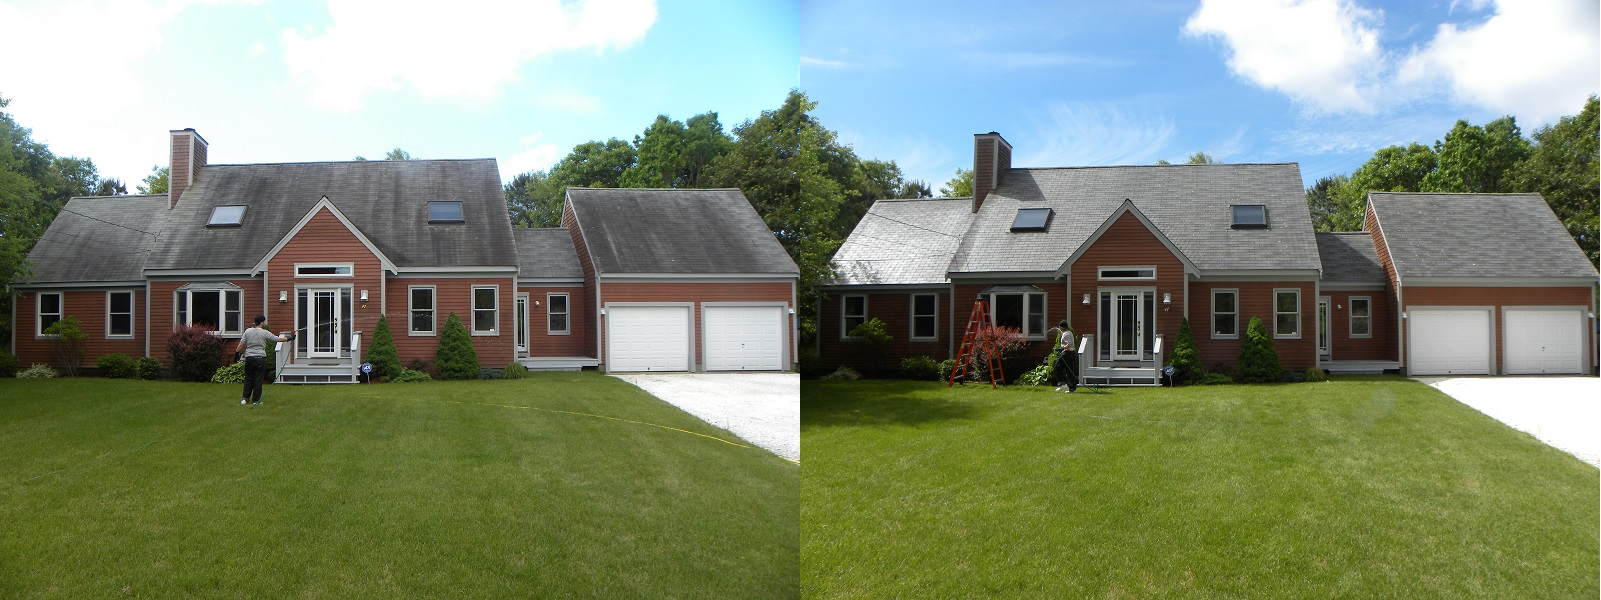 ... Before After Roof Cleaning Cape Cod Ma